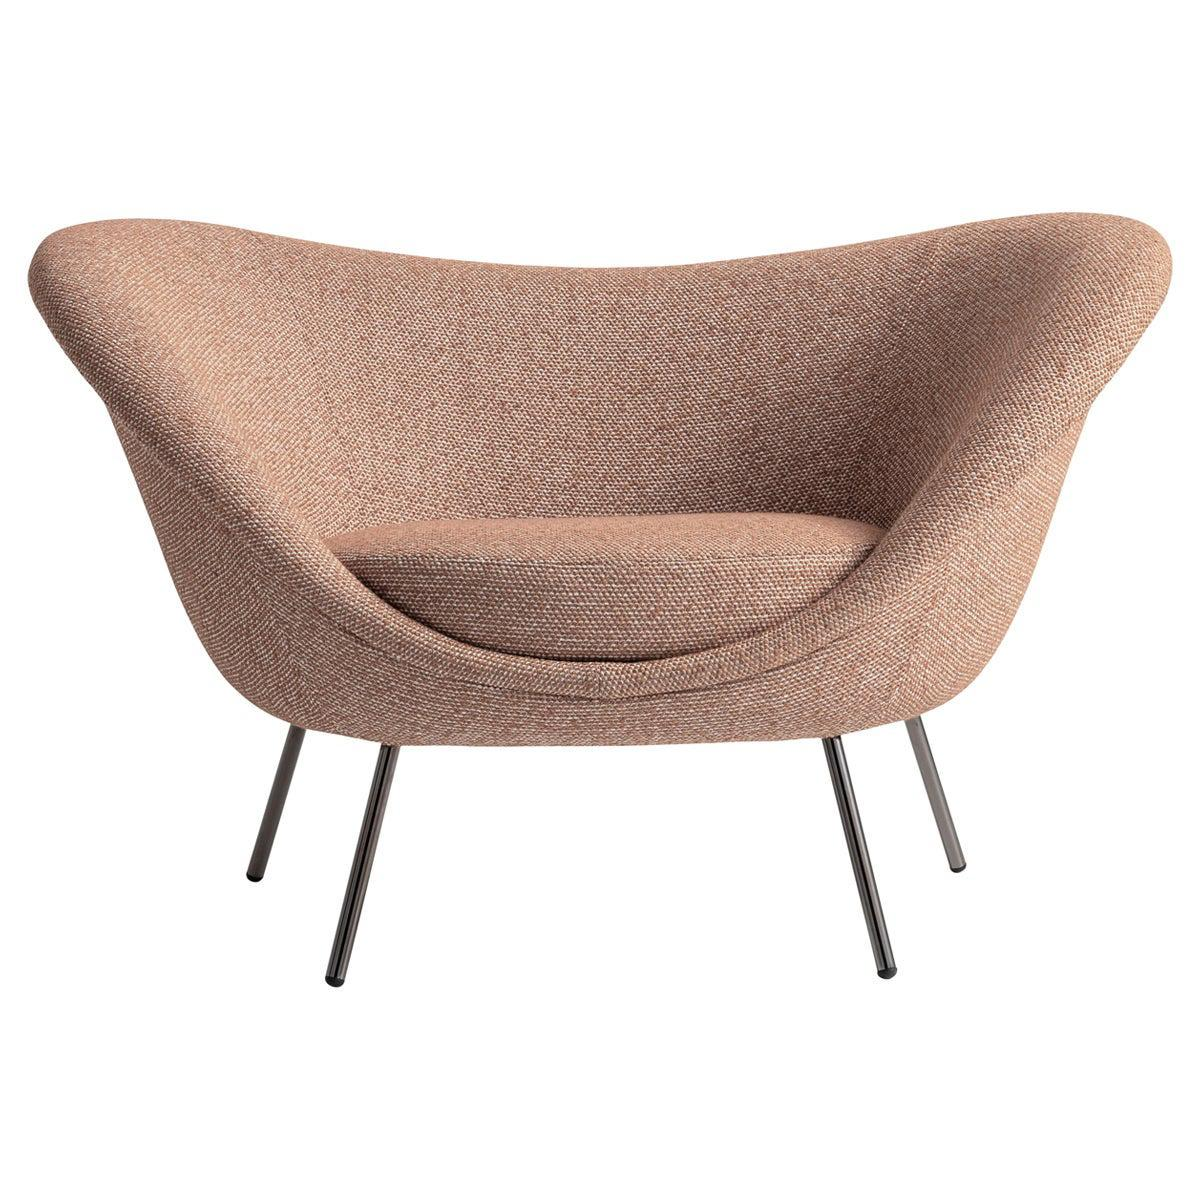 Molteni&C D.154.2 Armchair in Pink Boucle by Gio Ponti